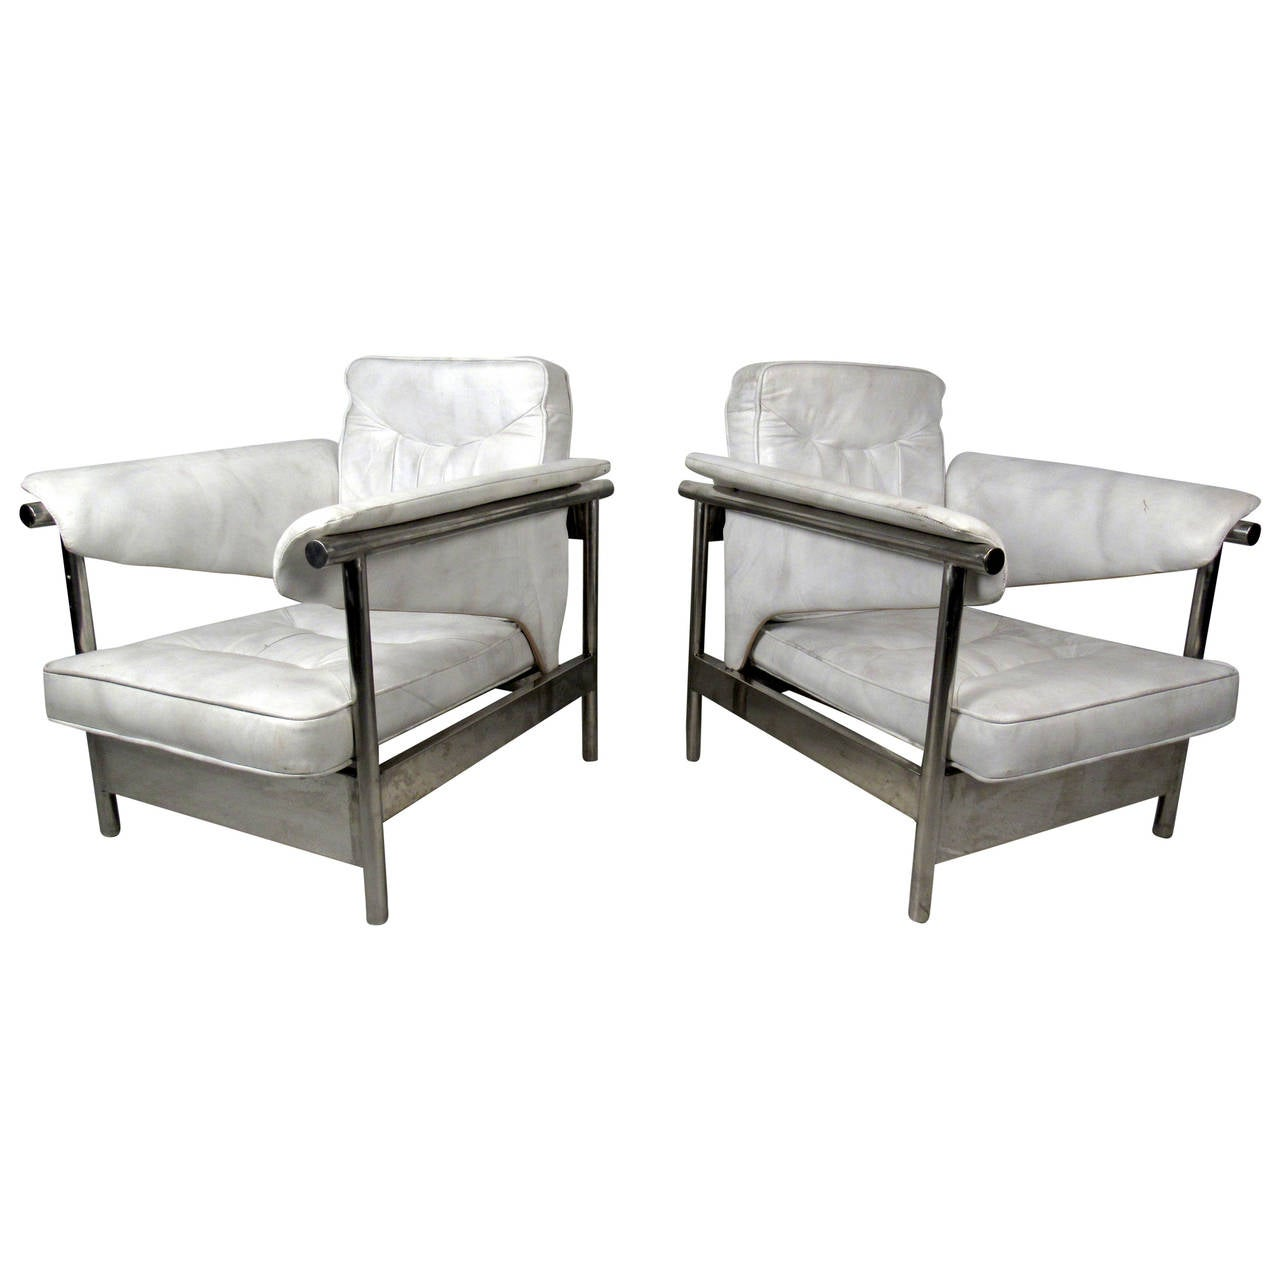 white leather chairs for sale vanity chair pottery barn pair of italian and chrome lounge